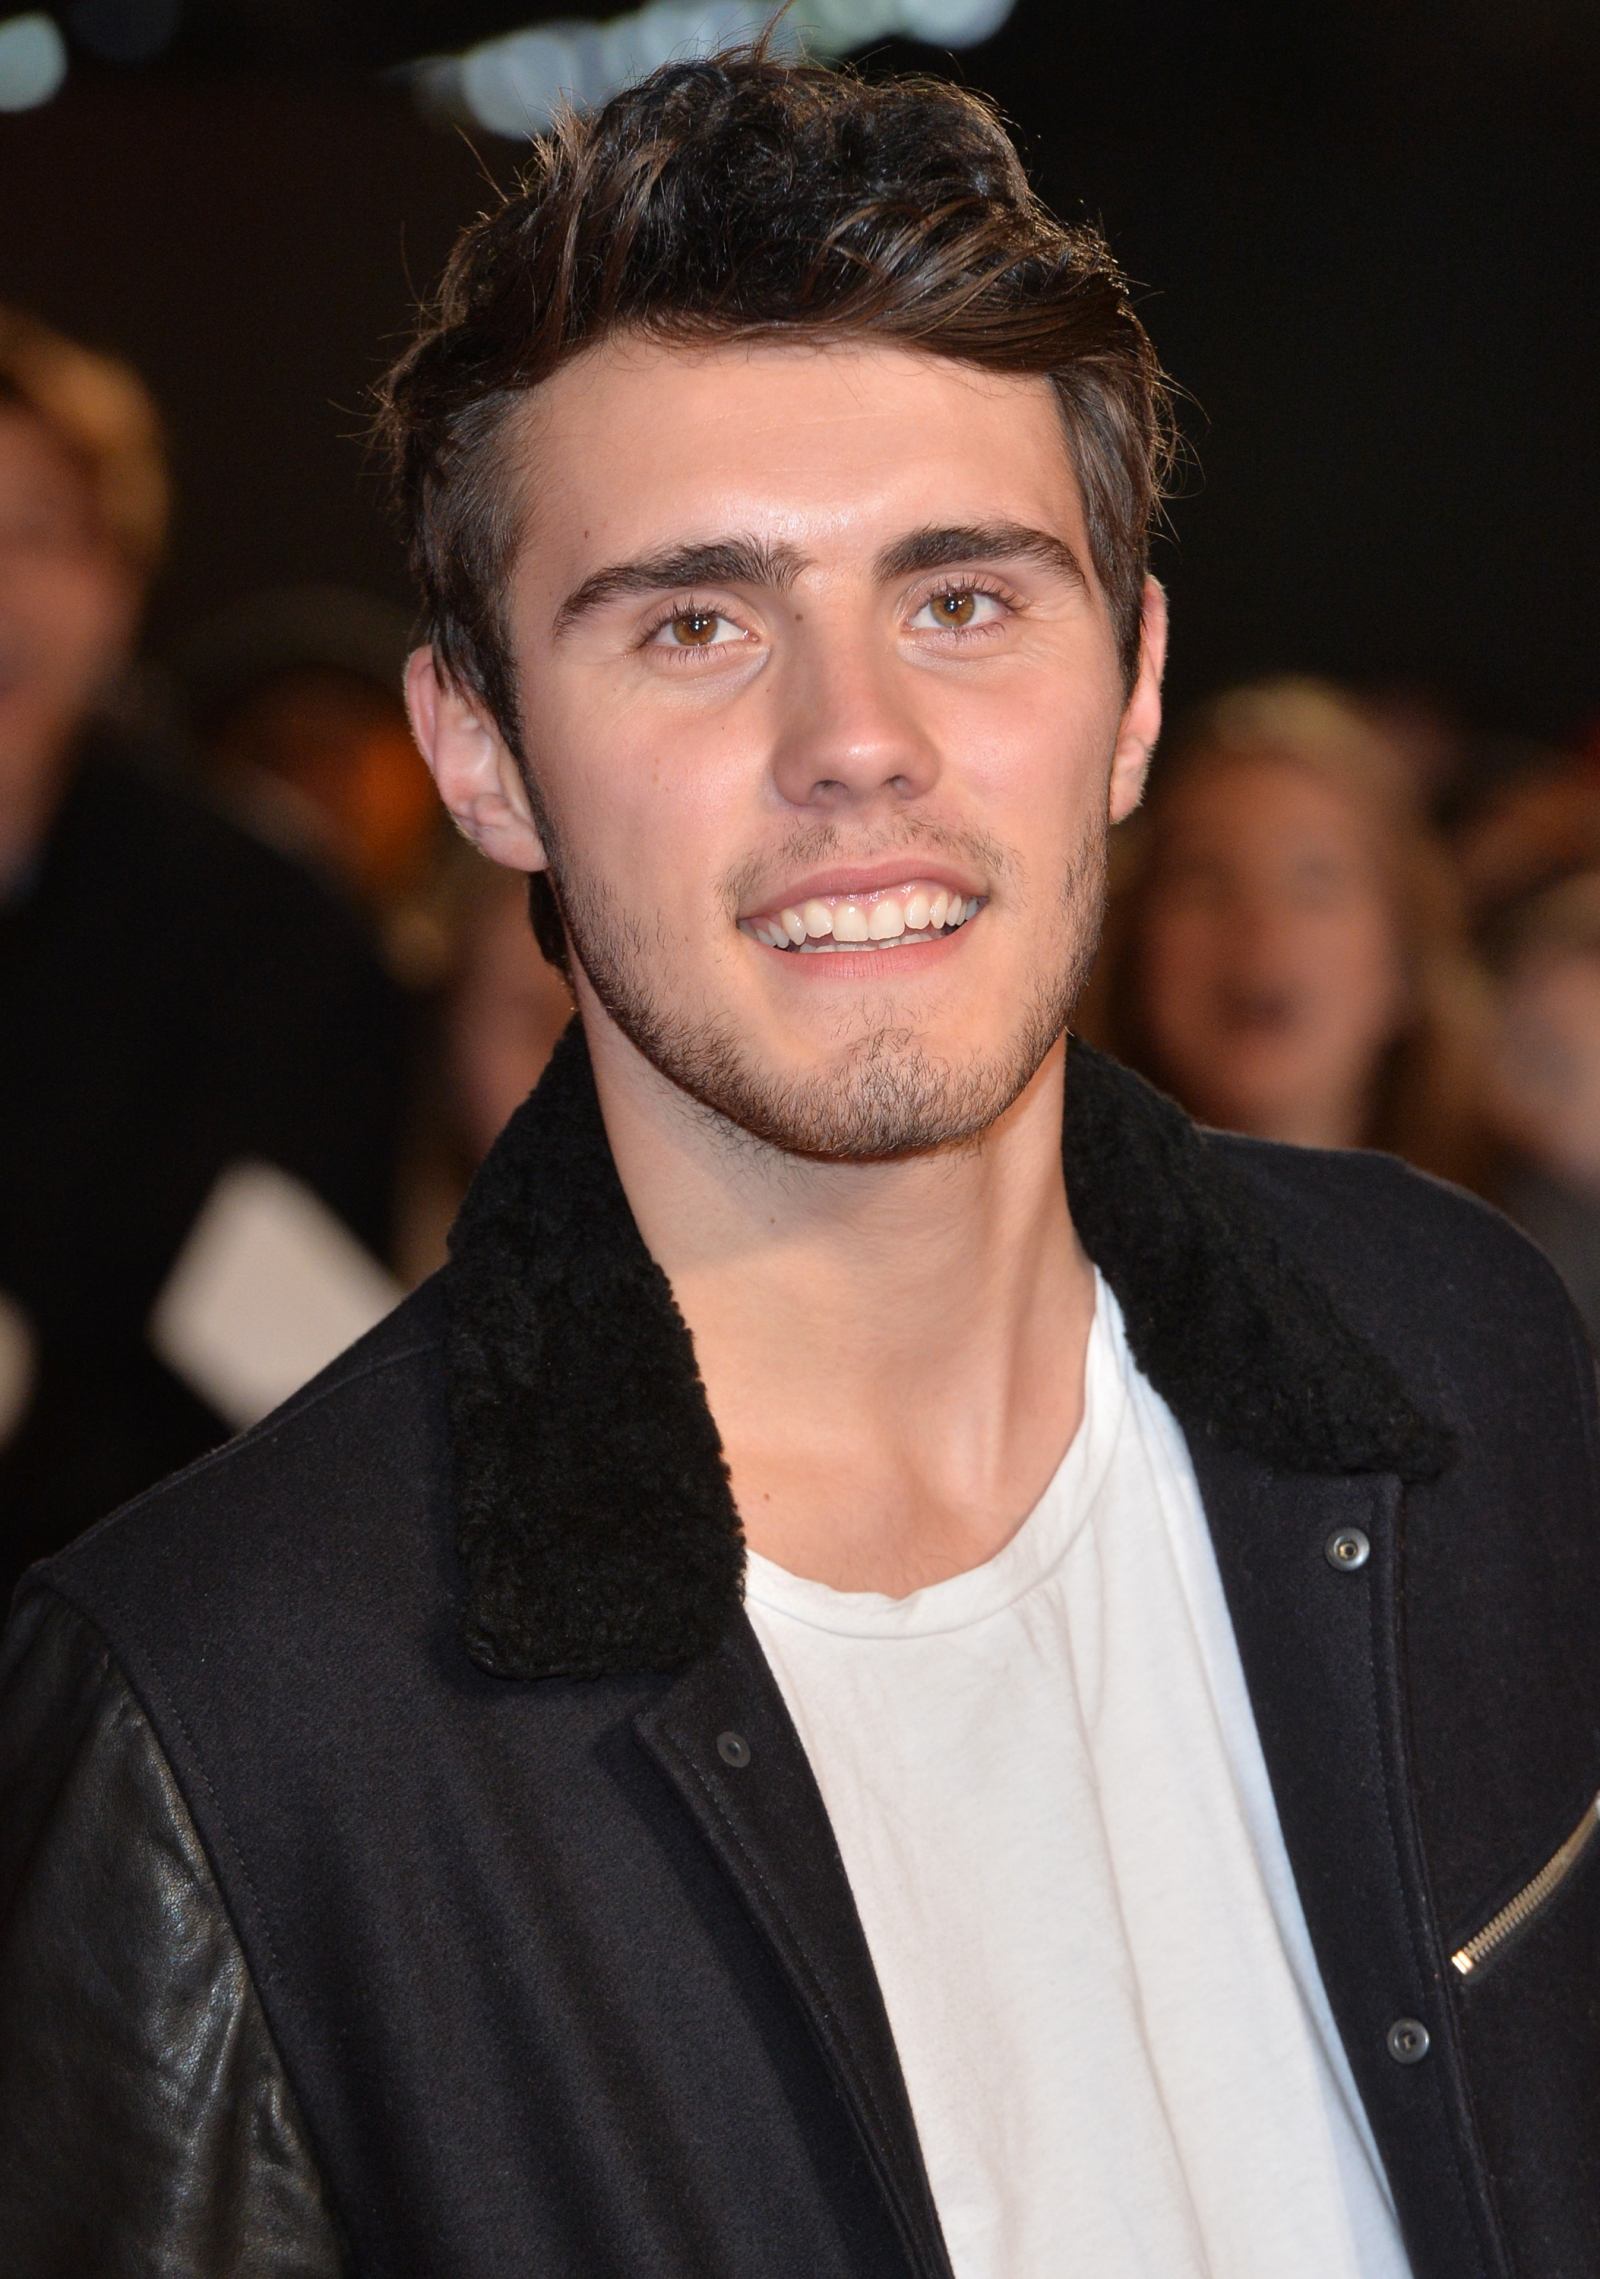 Are Zoella And Alfie Deyes Proof That Youtube Vloggers Are The New  Celebrity?